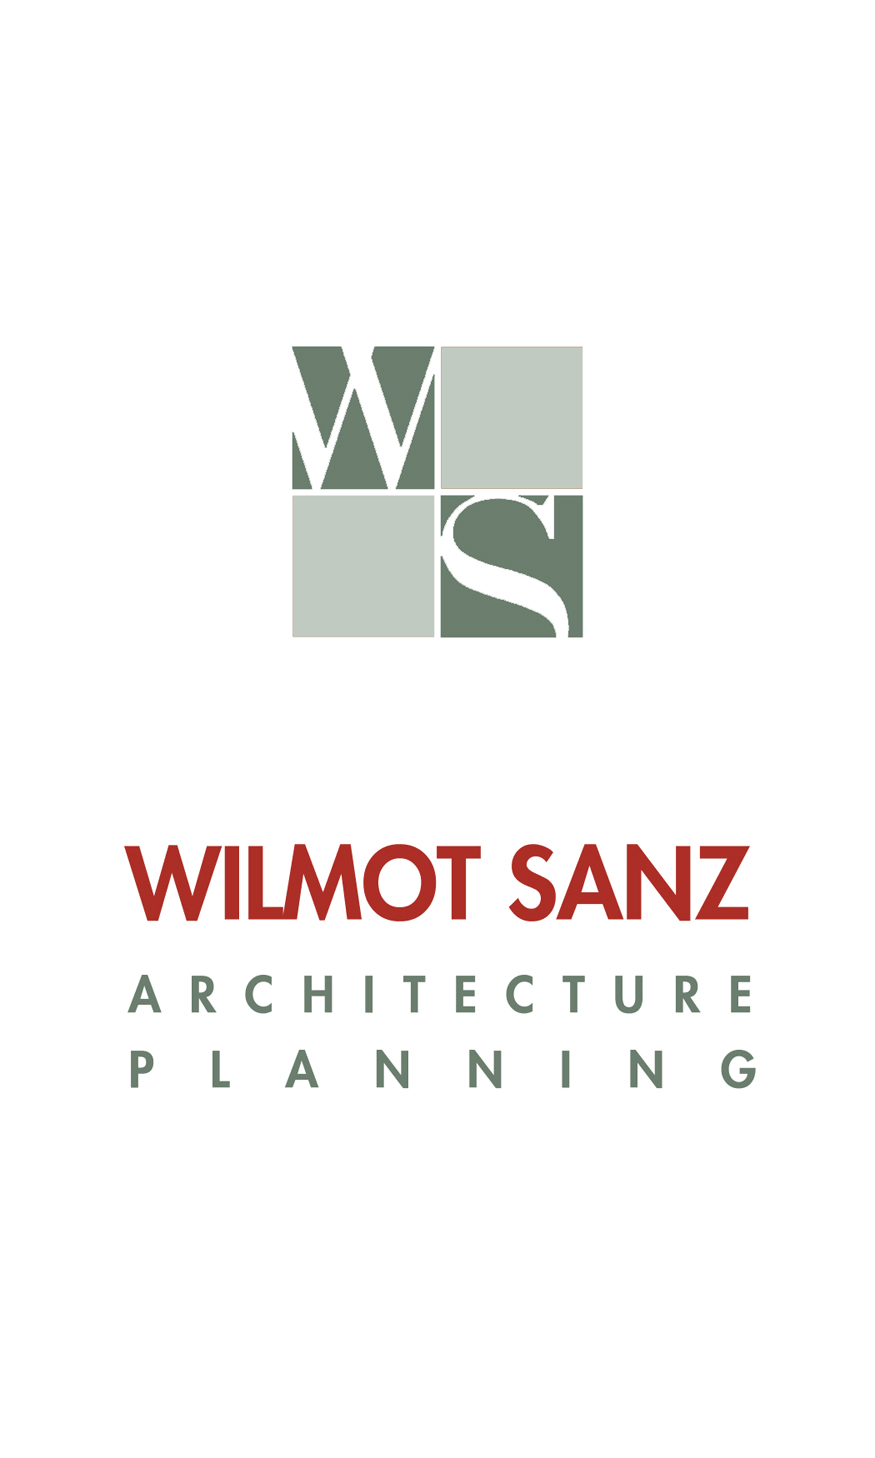 Wilmot Sanz Architecture Planning